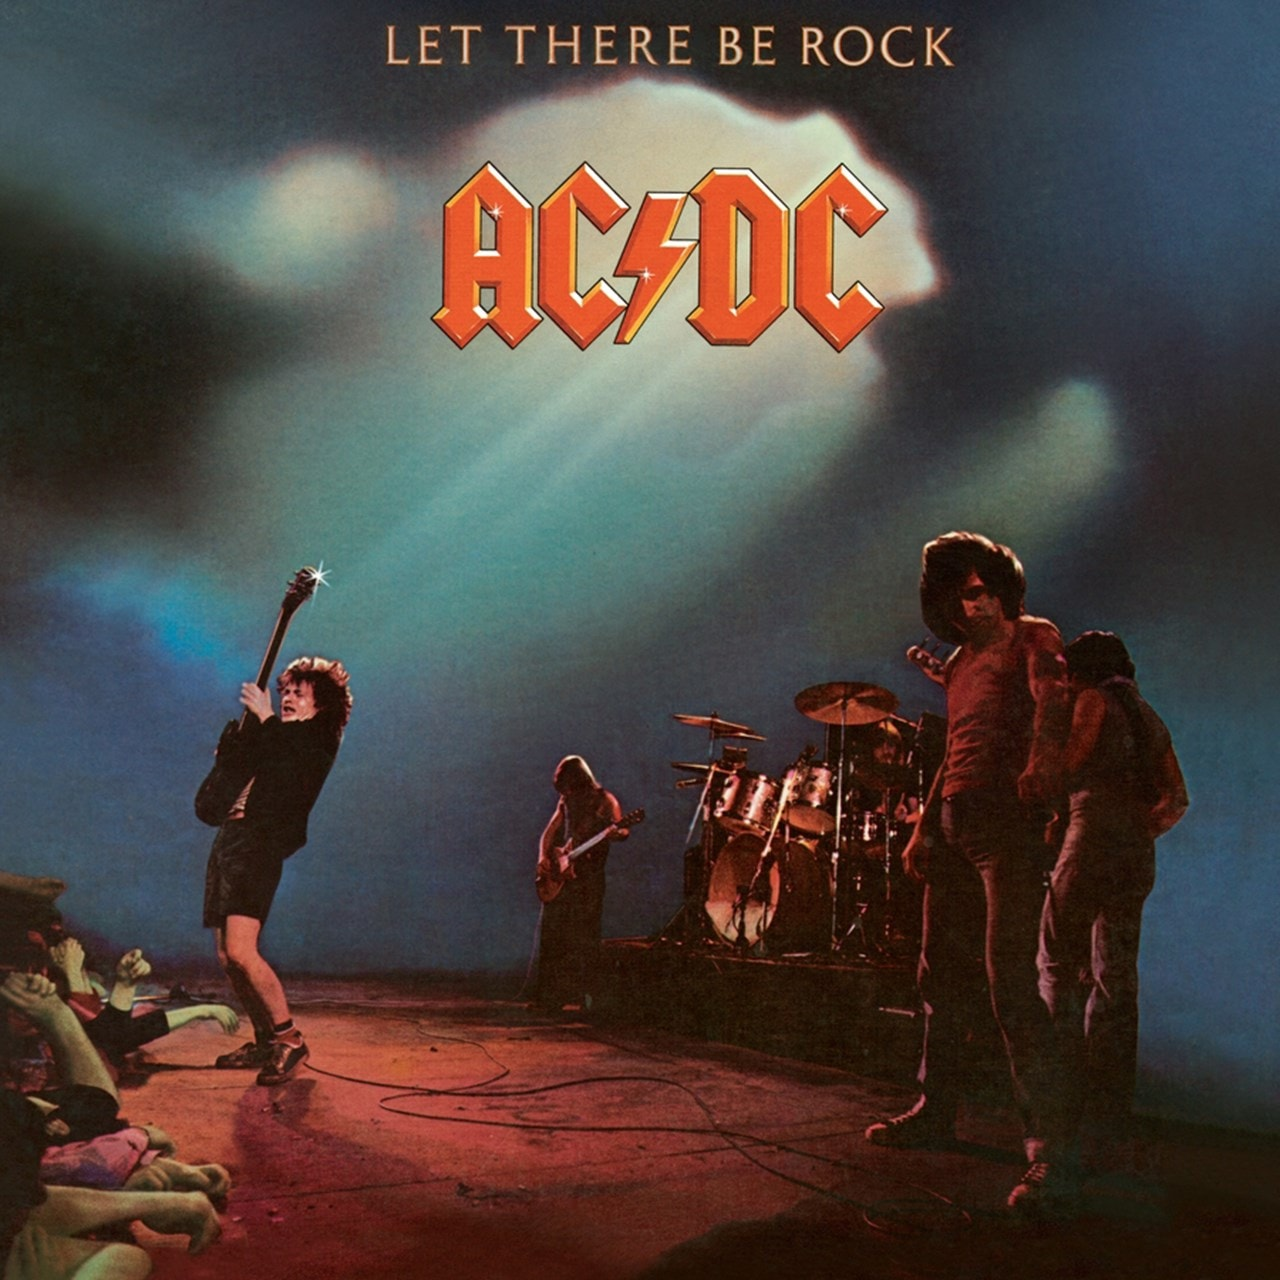 Let There Be Rock - 1